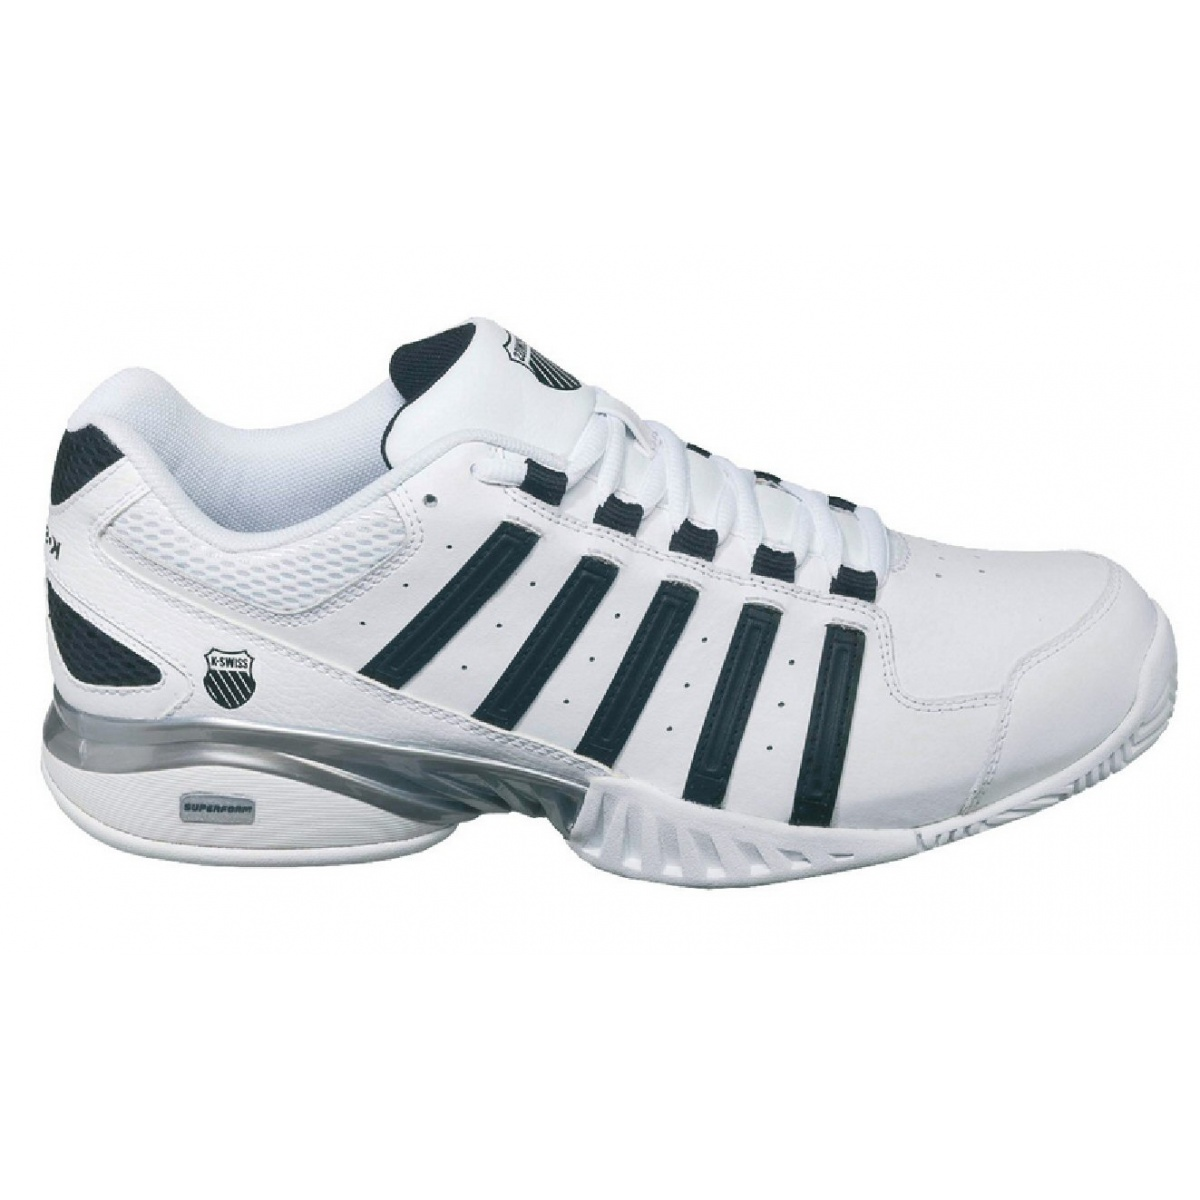 kswiss receiver iii weiss schwarz indoor tennisschuhe herren gr e 41 versandkostenfrei online. Black Bedroom Furniture Sets. Home Design Ideas